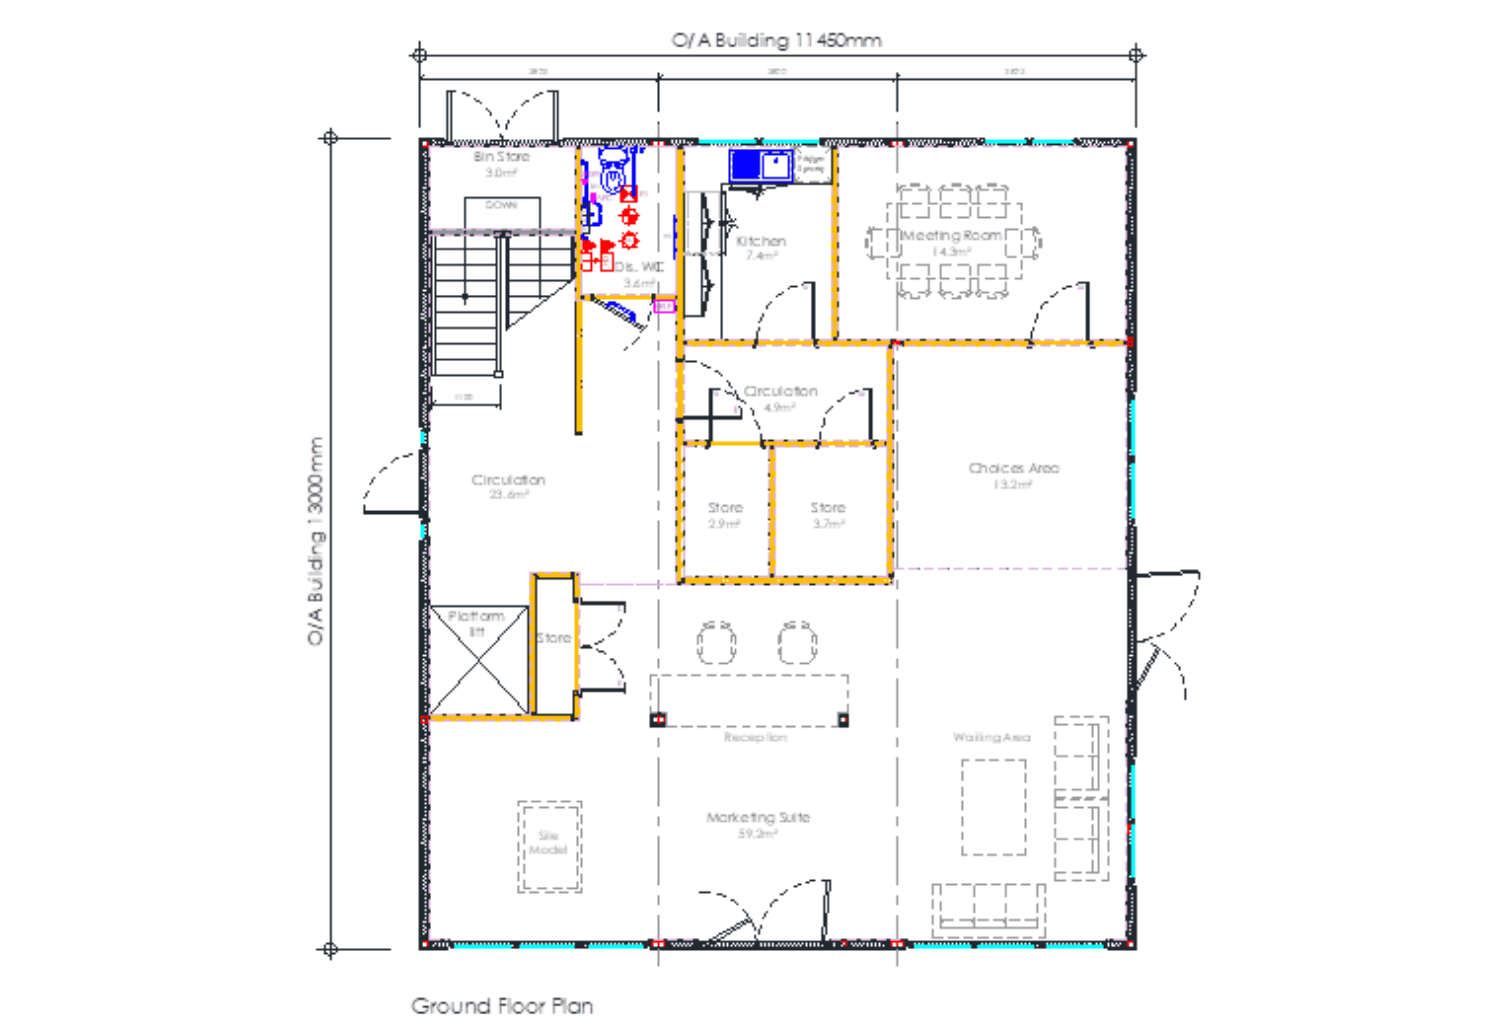 Drawing of marketing suite